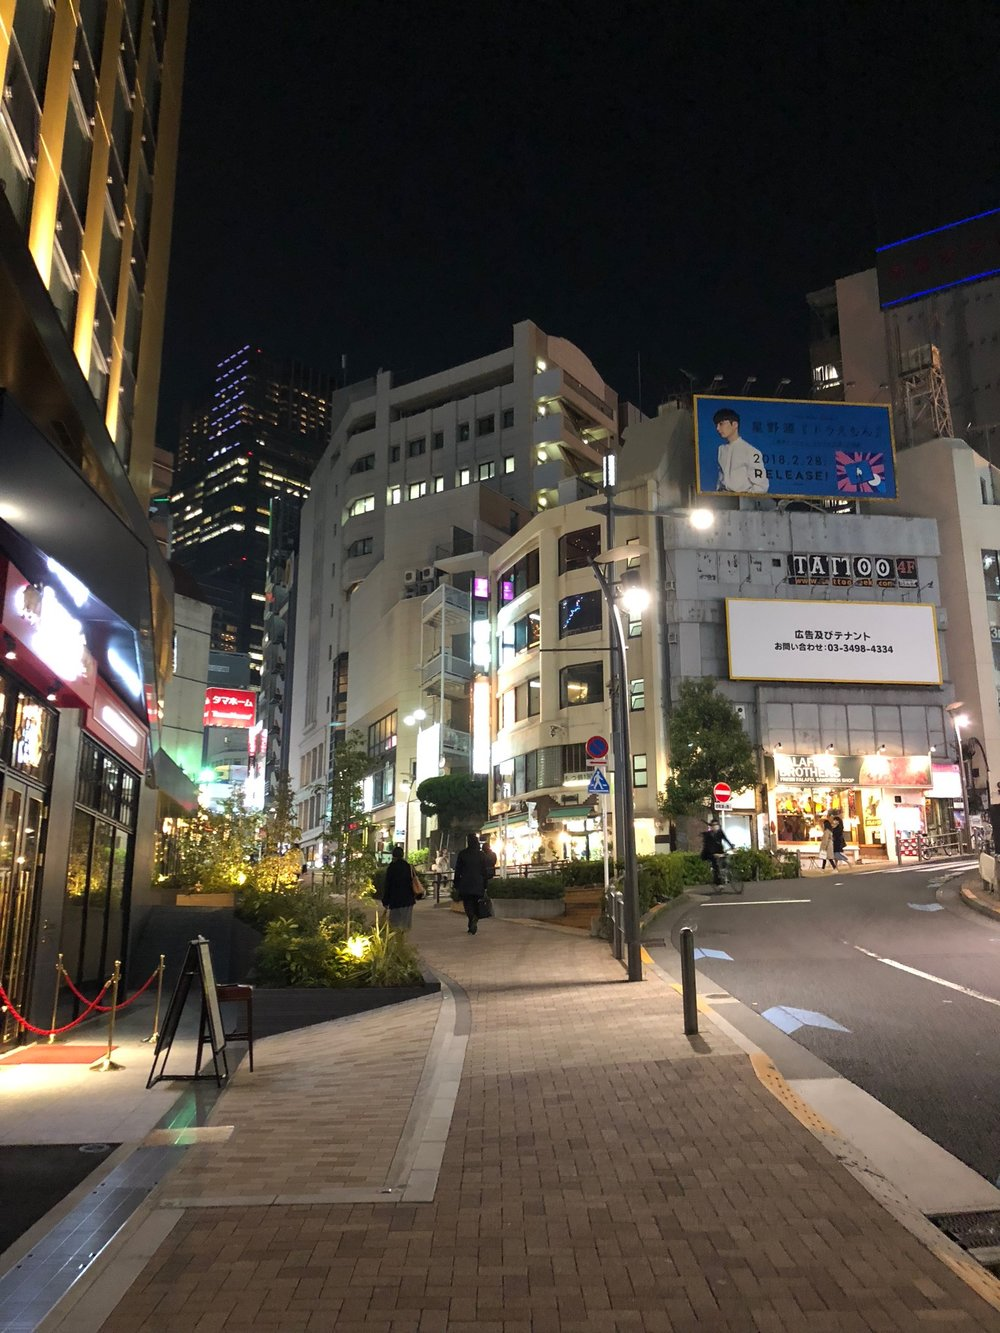 After dinner with Antje and Dave, walking back to the metro station, it dawned on us just how clean and expertly designed Tokyo is. This was our last night in Tokyo and we were really starting to get the hang of being there and having fun!